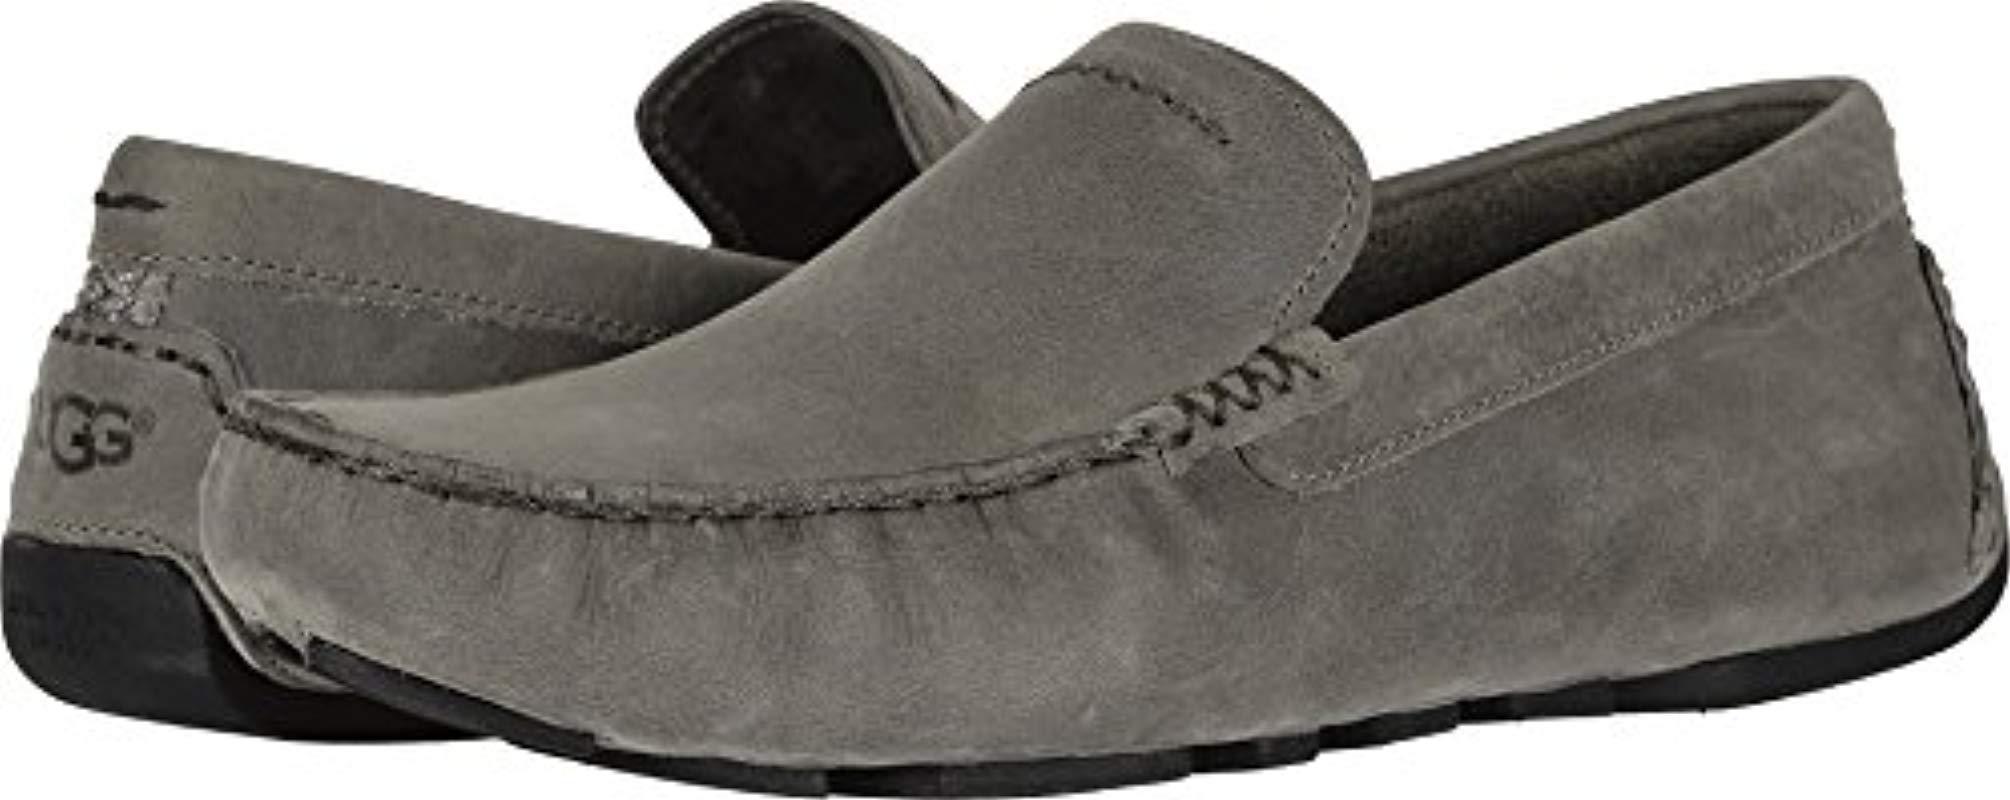 9bb59c8e686 Men's Gray Henrick Driving Style Loafer